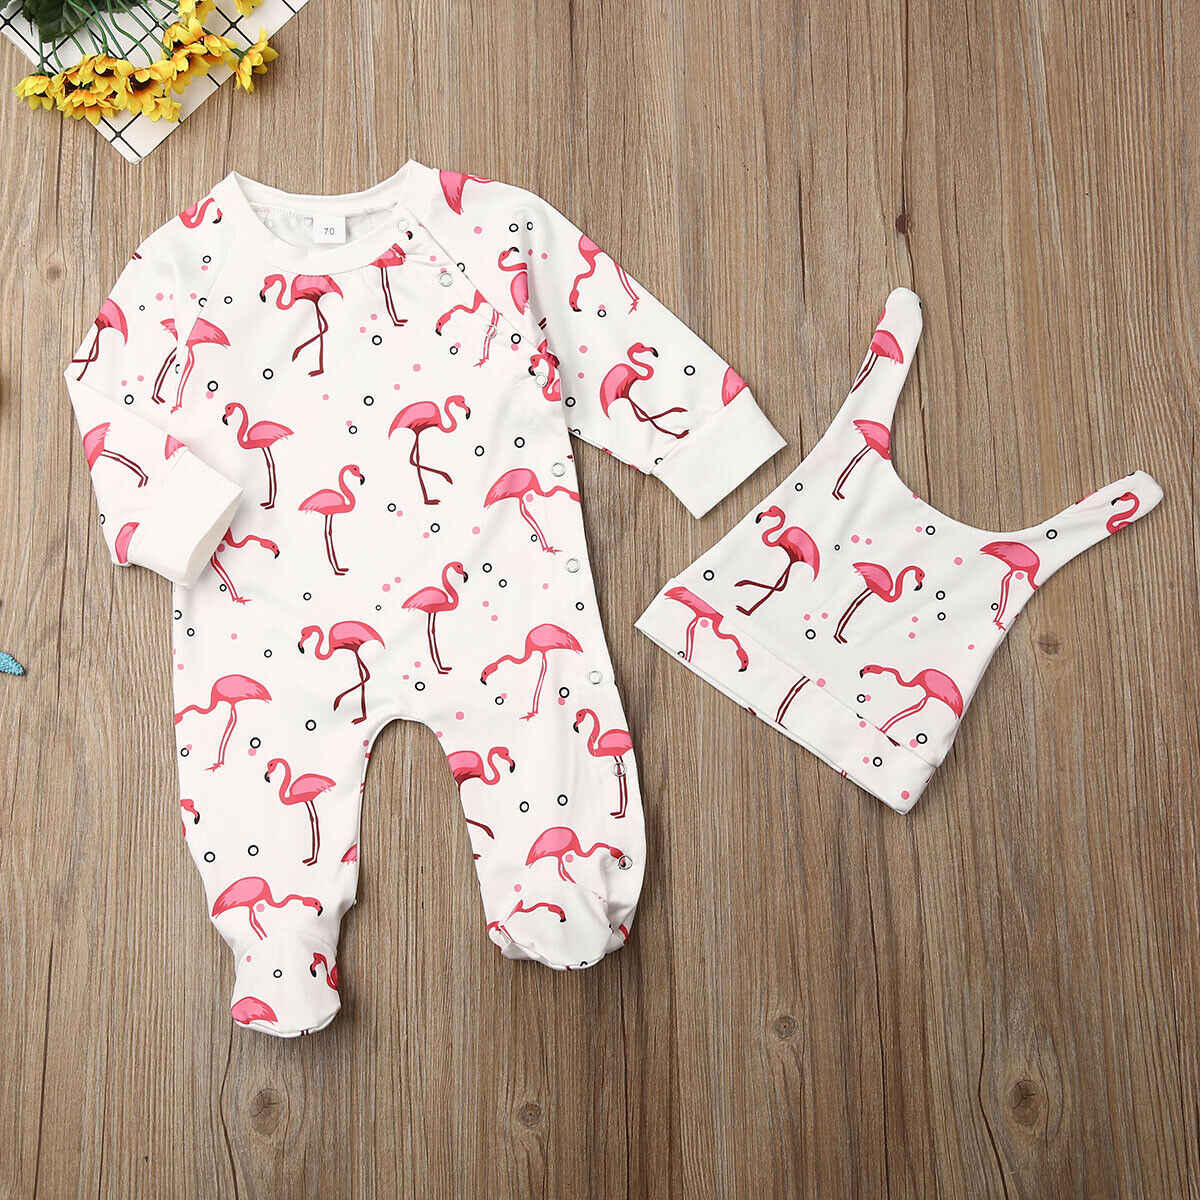 0-12M newborn baby Footies jumpsuit Comfortable cotton long sleeve cartoon flamingo print playsuit infant clothes